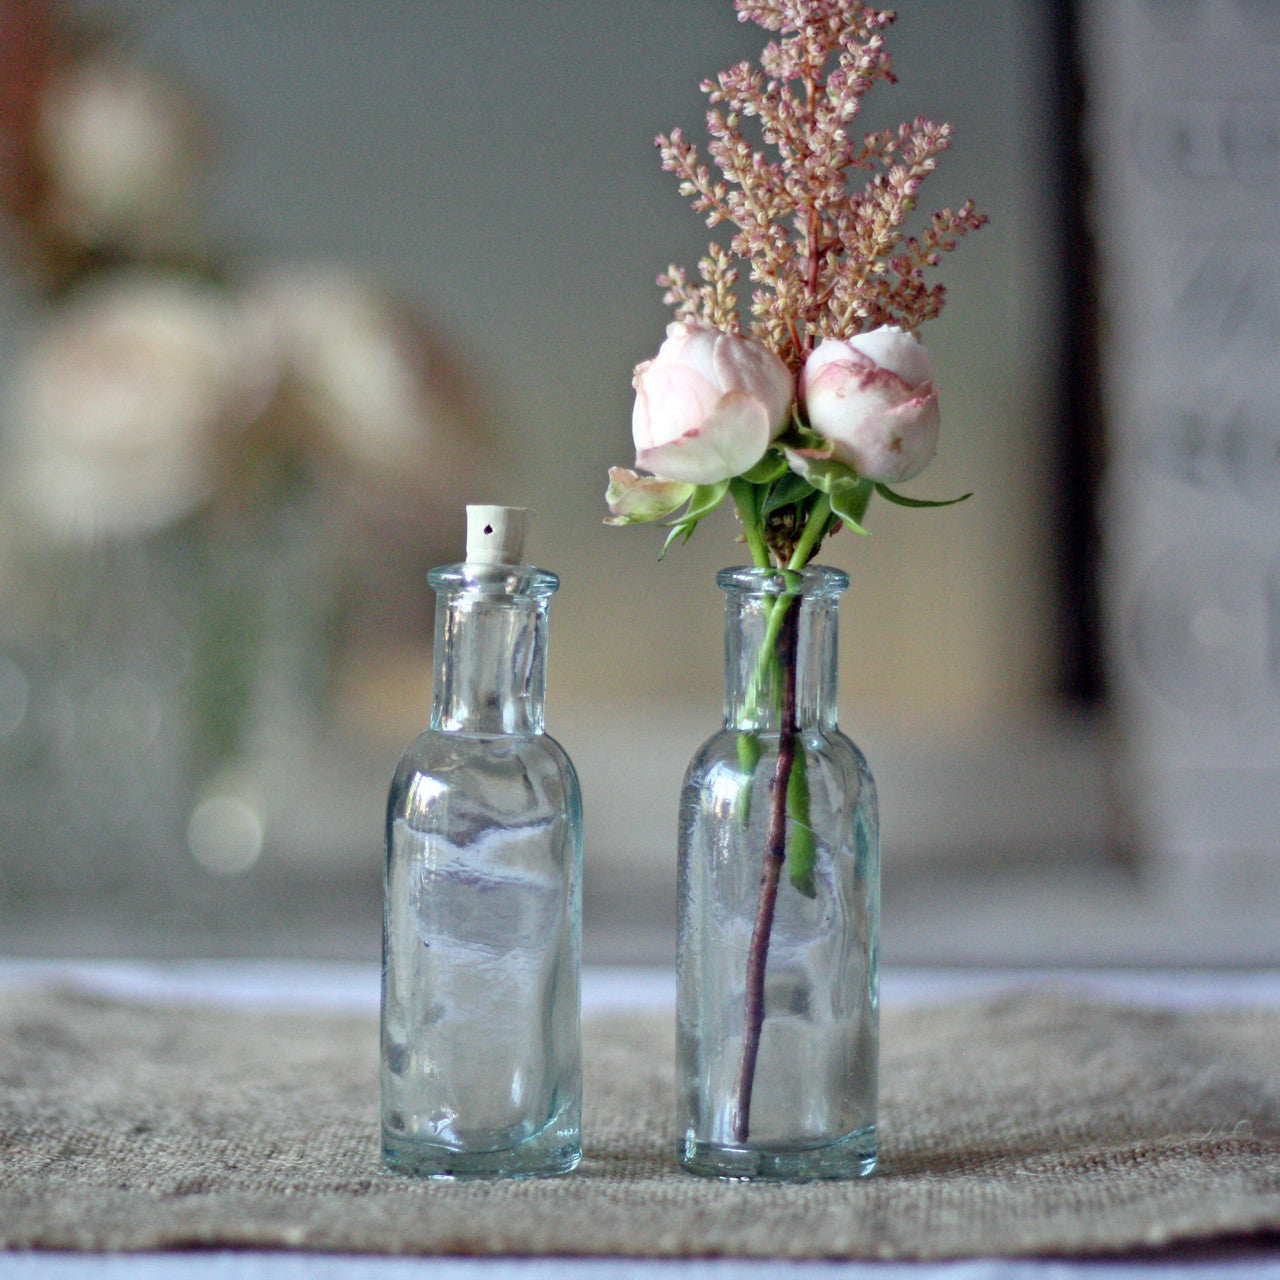 Real Weddings Cork: Mini Glass Bottles With Cork Stopper